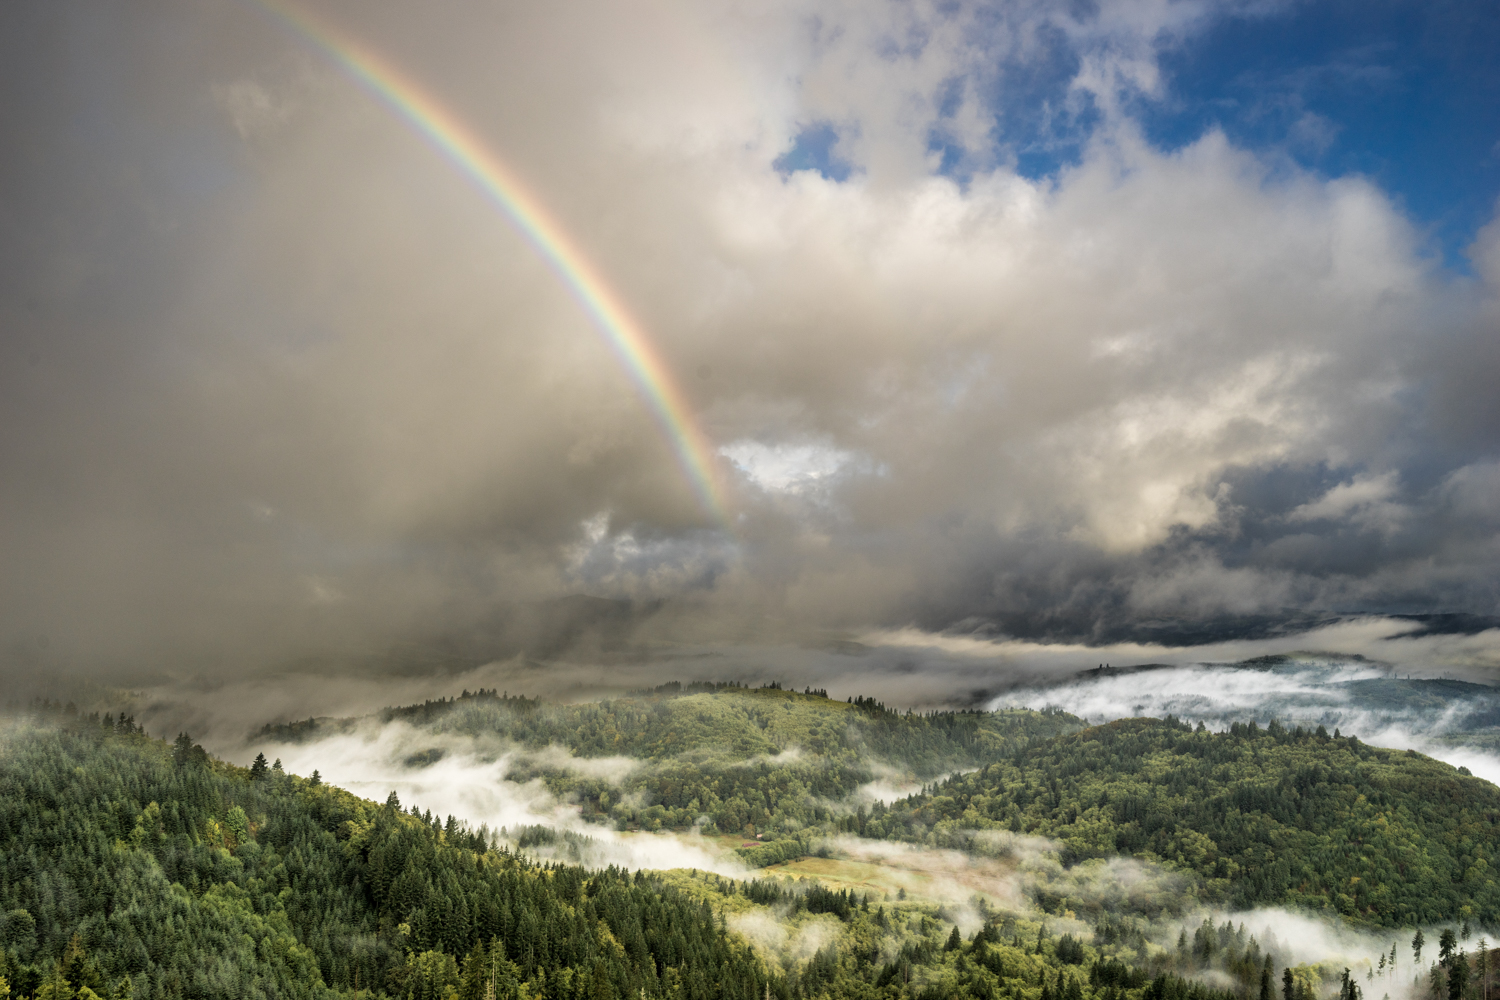 Early morning for and mist results in a wondrous rainbow.  Deep in the forests of northwest Oregon along a logging road.